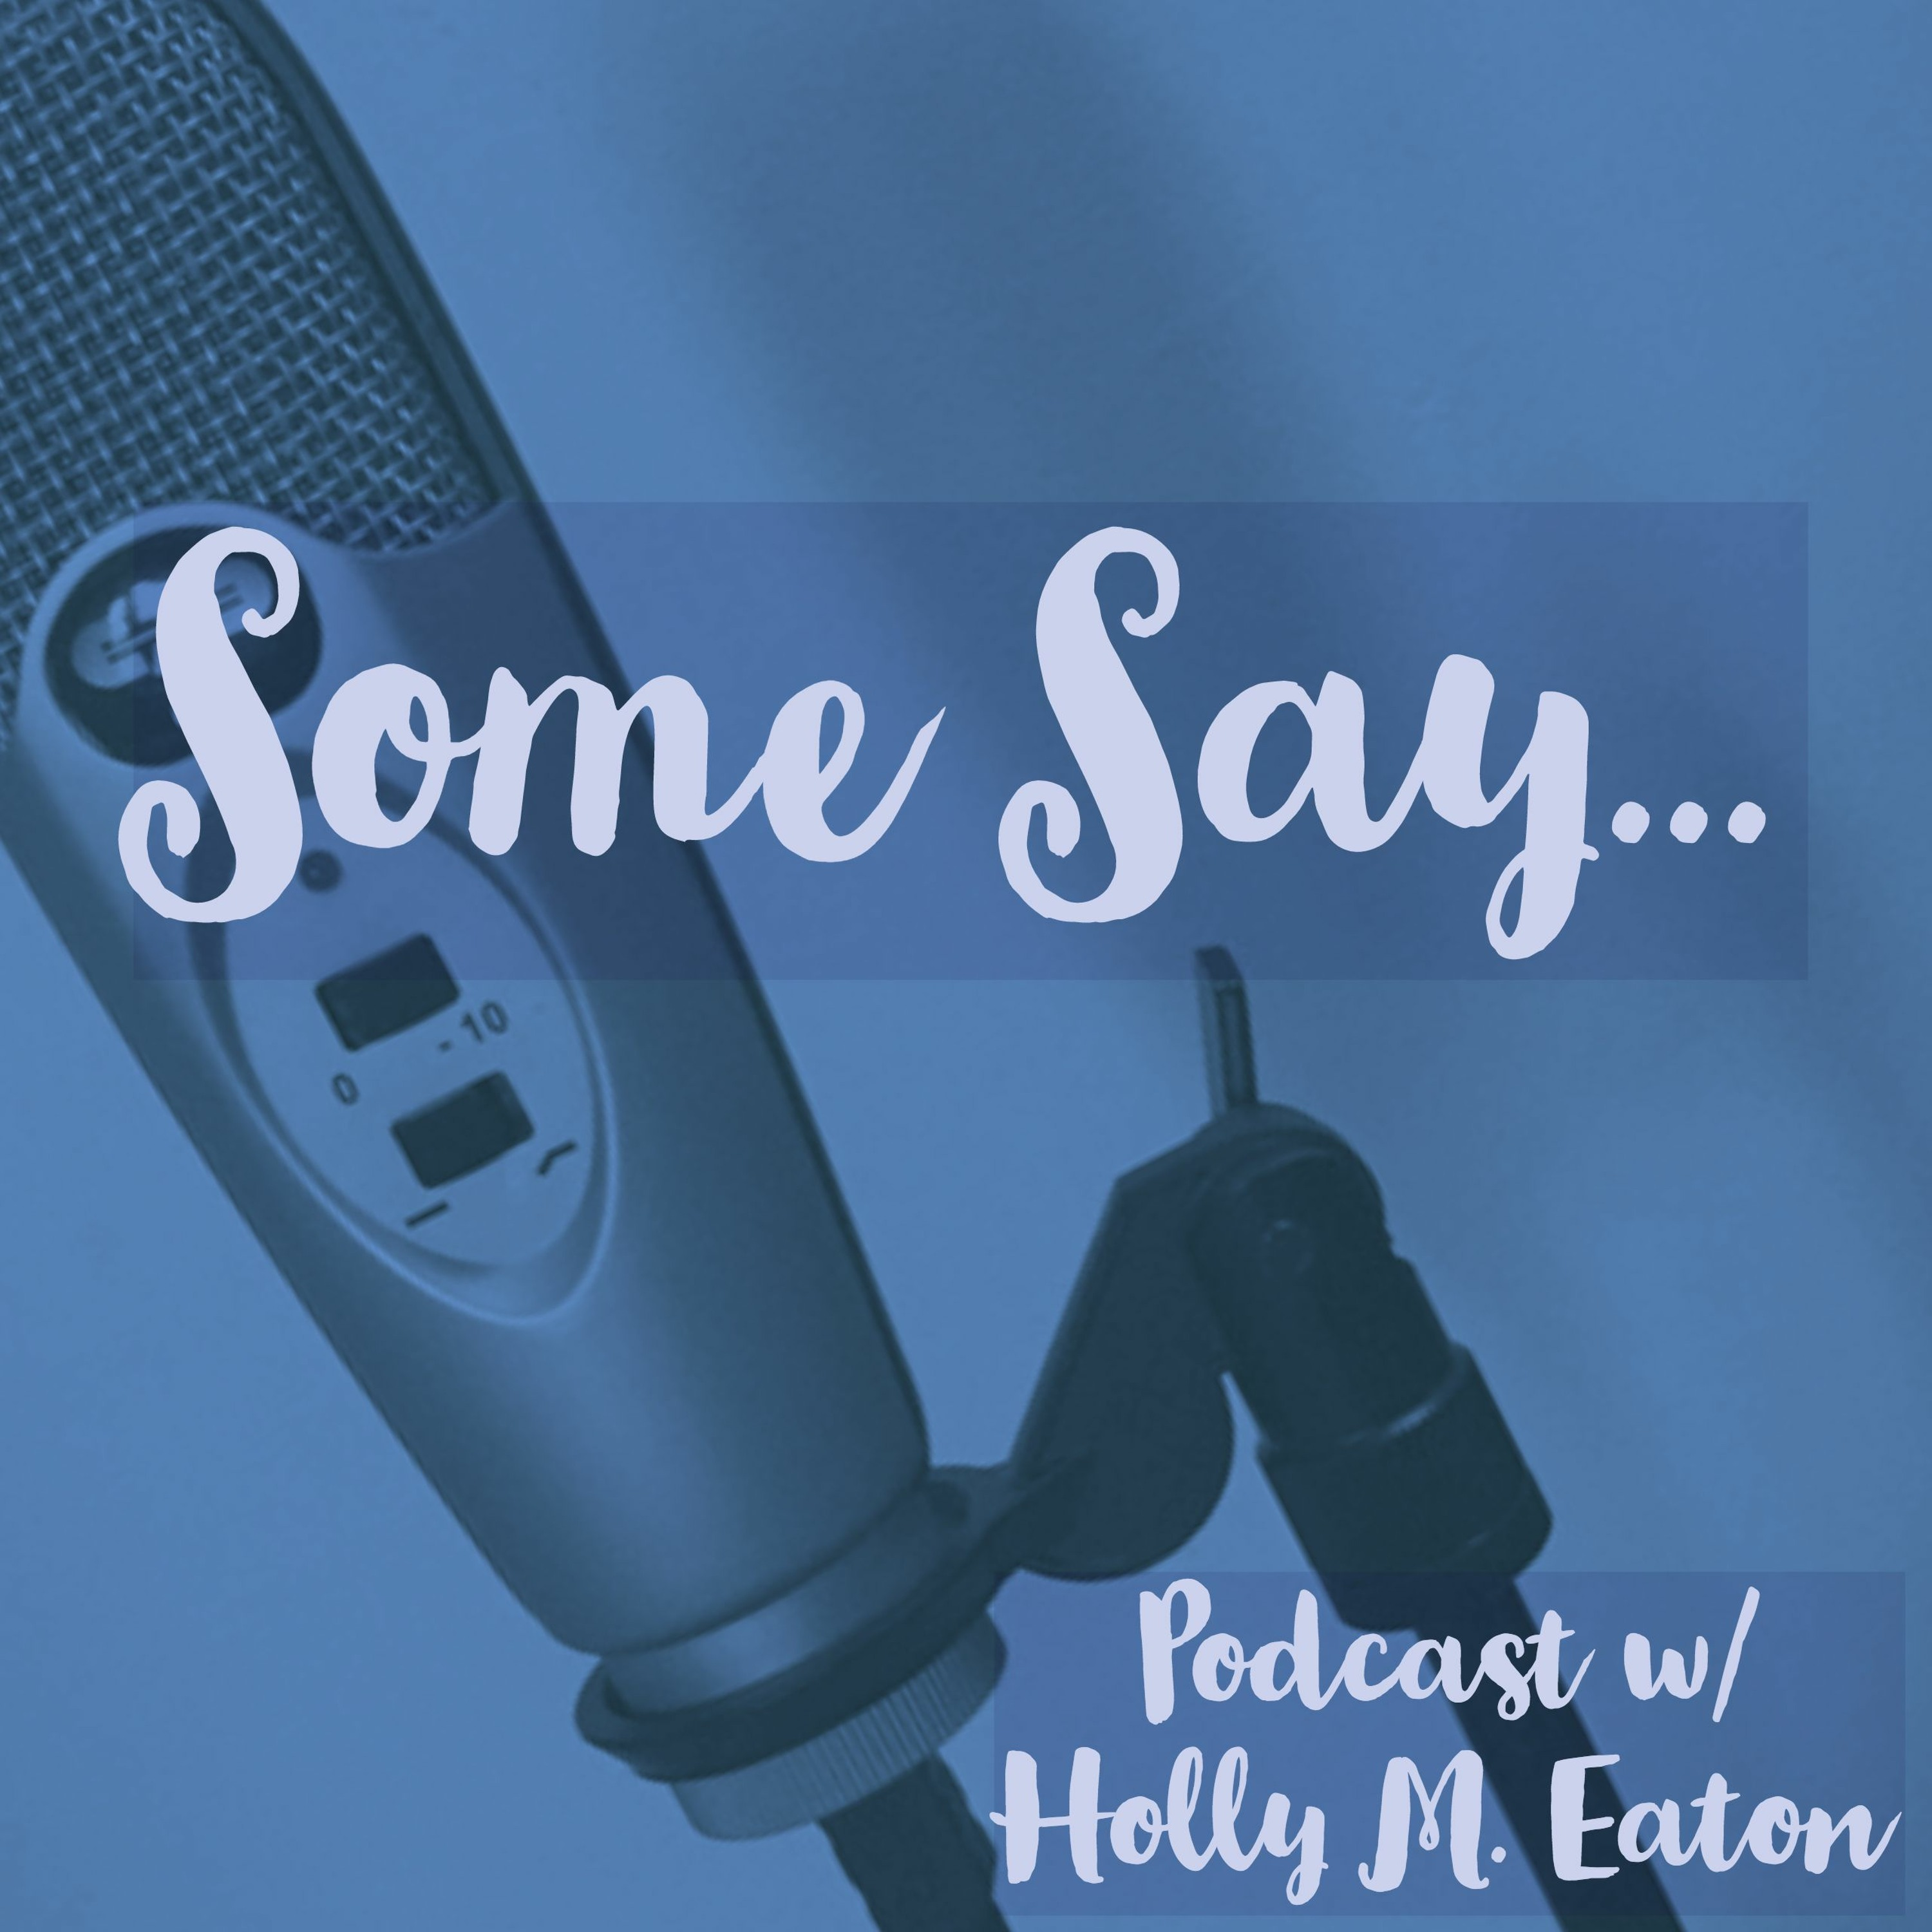 Some Say... Podcast! Ep. 1 MZevin